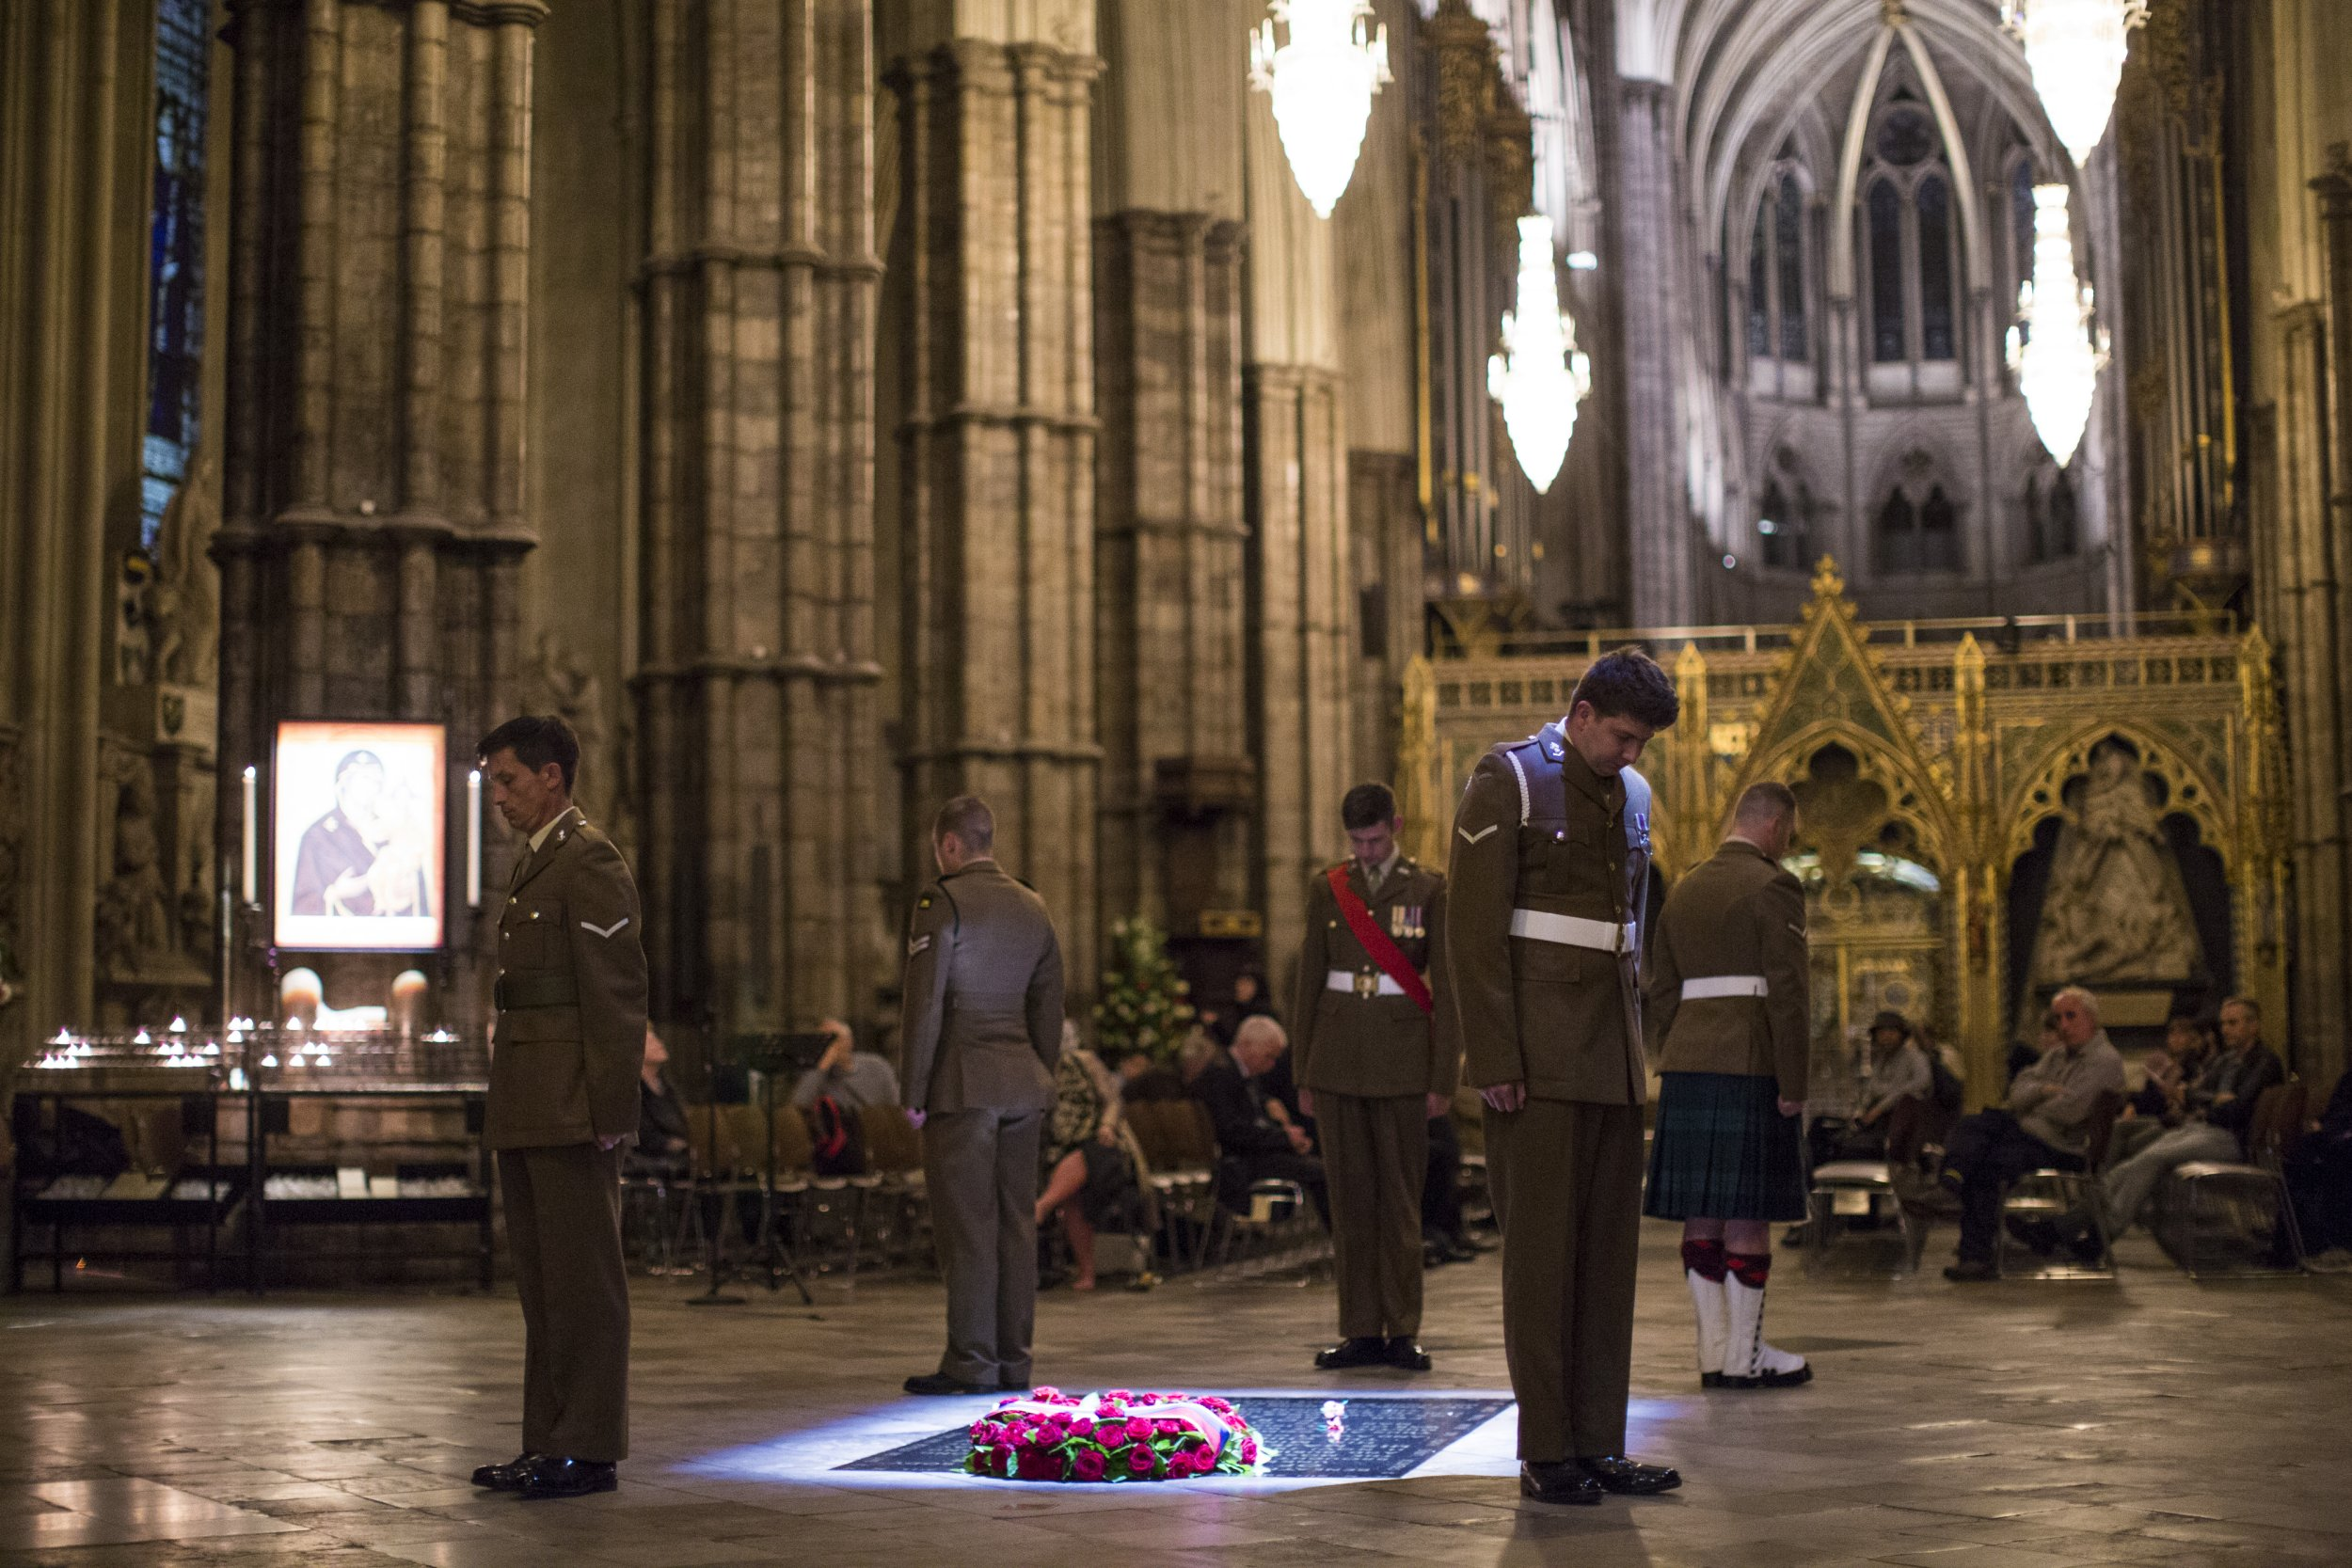 LONDON, ENGLAND - JULY 01: British Military personnel LBdr Walsh, LCpl Drury, LCpl Kinmond, Cpl Wolfe and Sgt Cohoon stand at the Grave of the Unknown Warrior during a vigil to commemorate the centenary of the Battle of the Somme at Westminster Abbey on July 1, 2016 in London, England. The overnight vigil is being held to remember those who died in the Battle of the Somme which began 100 years ago on July 1st 1916. Armies of British and French soldiers fought against the German Empire and over one million lives were lost. The Grave of the Unknown Warrior contains the body of an unidentified British solider from the First World War buried in French soil and covered with a Belgian marble slab. (Photo by Jack Taylor/Getty Images)